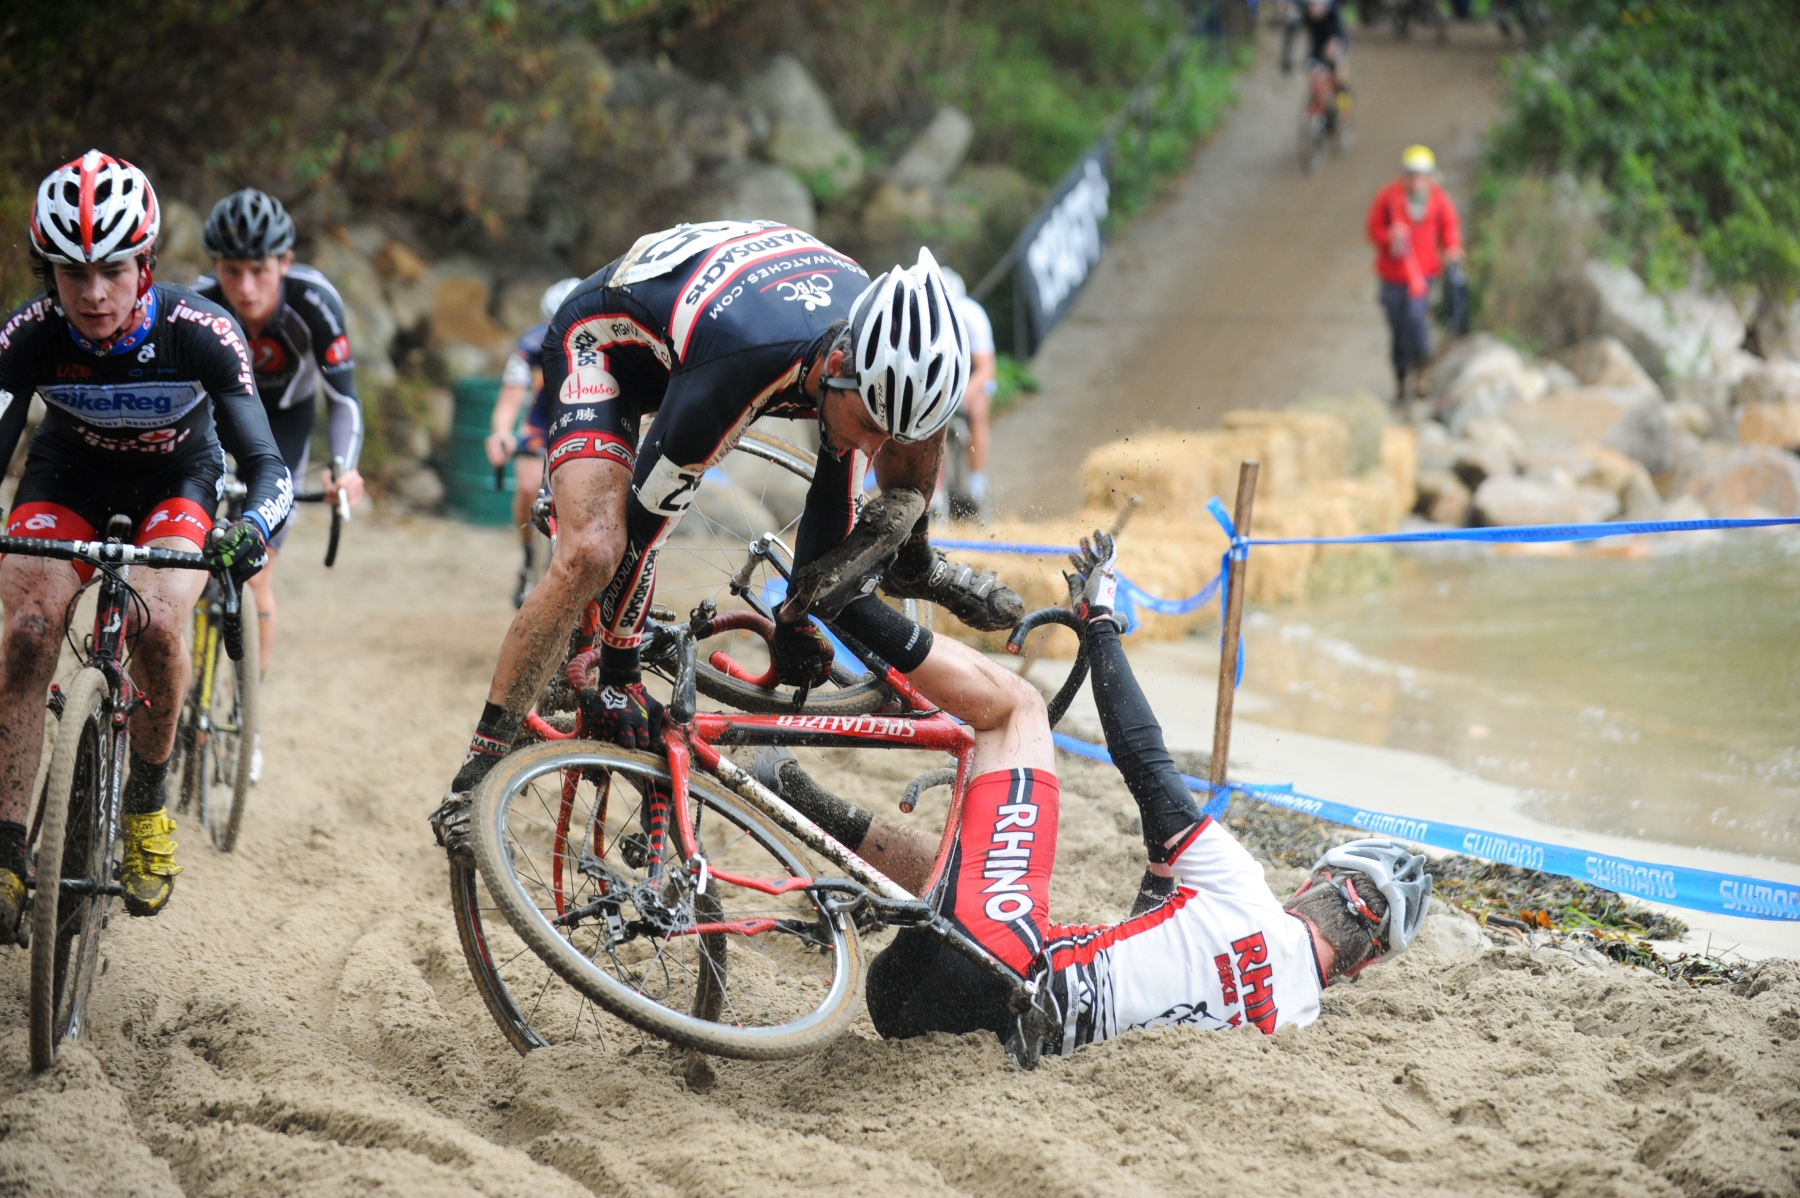 Cyclocross: Sand pit crash